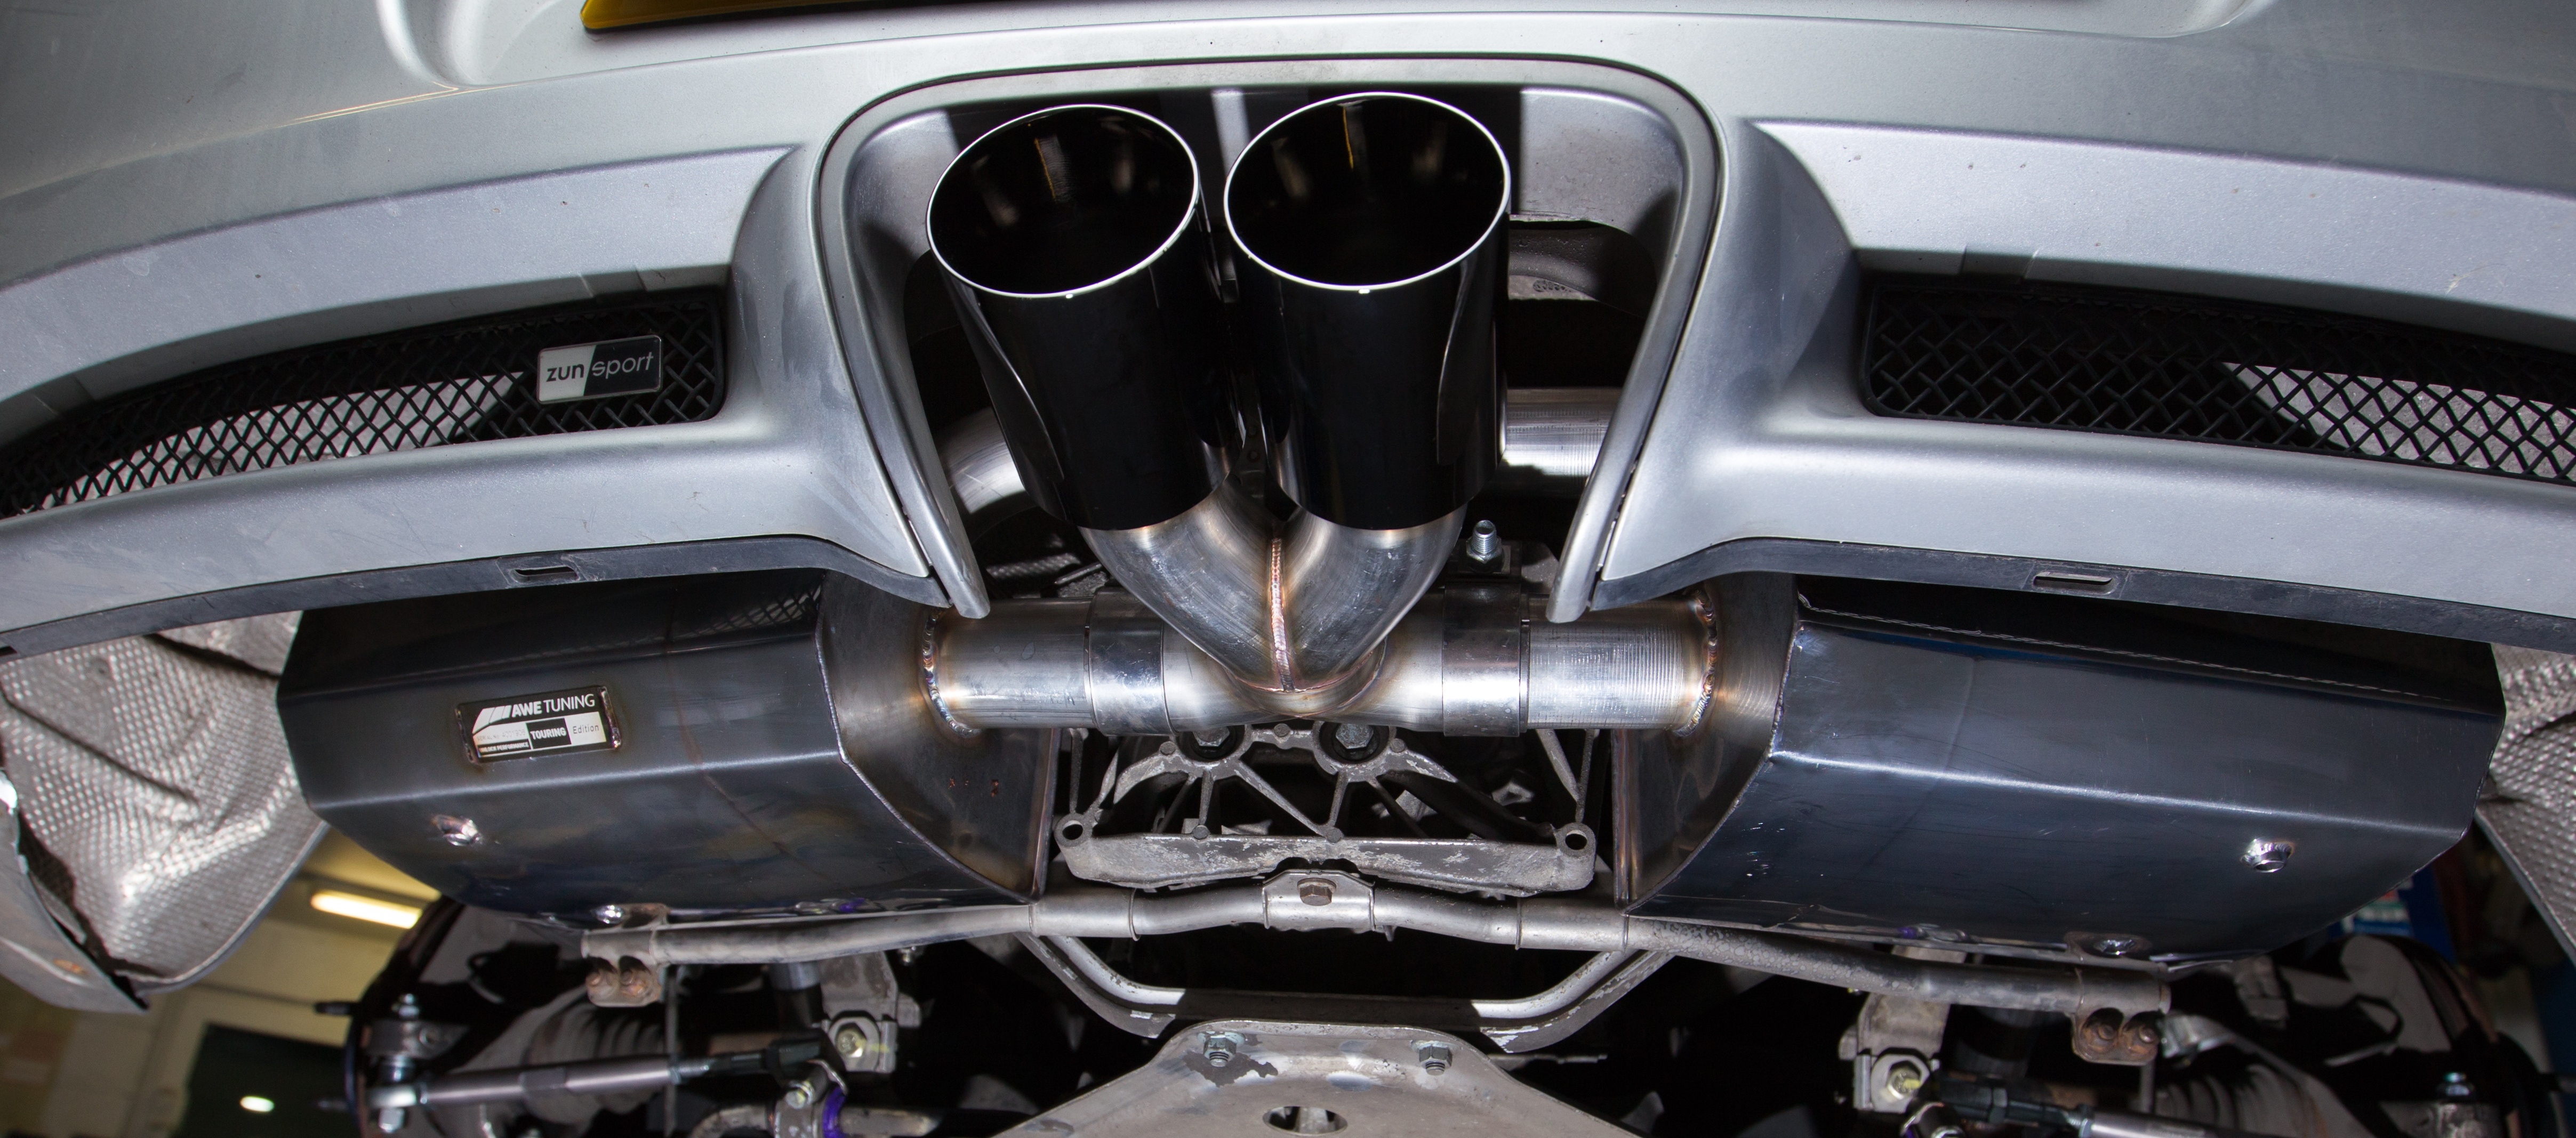 Customer Cayman S 987 Project: AWE Tuning Exhaust - Regal